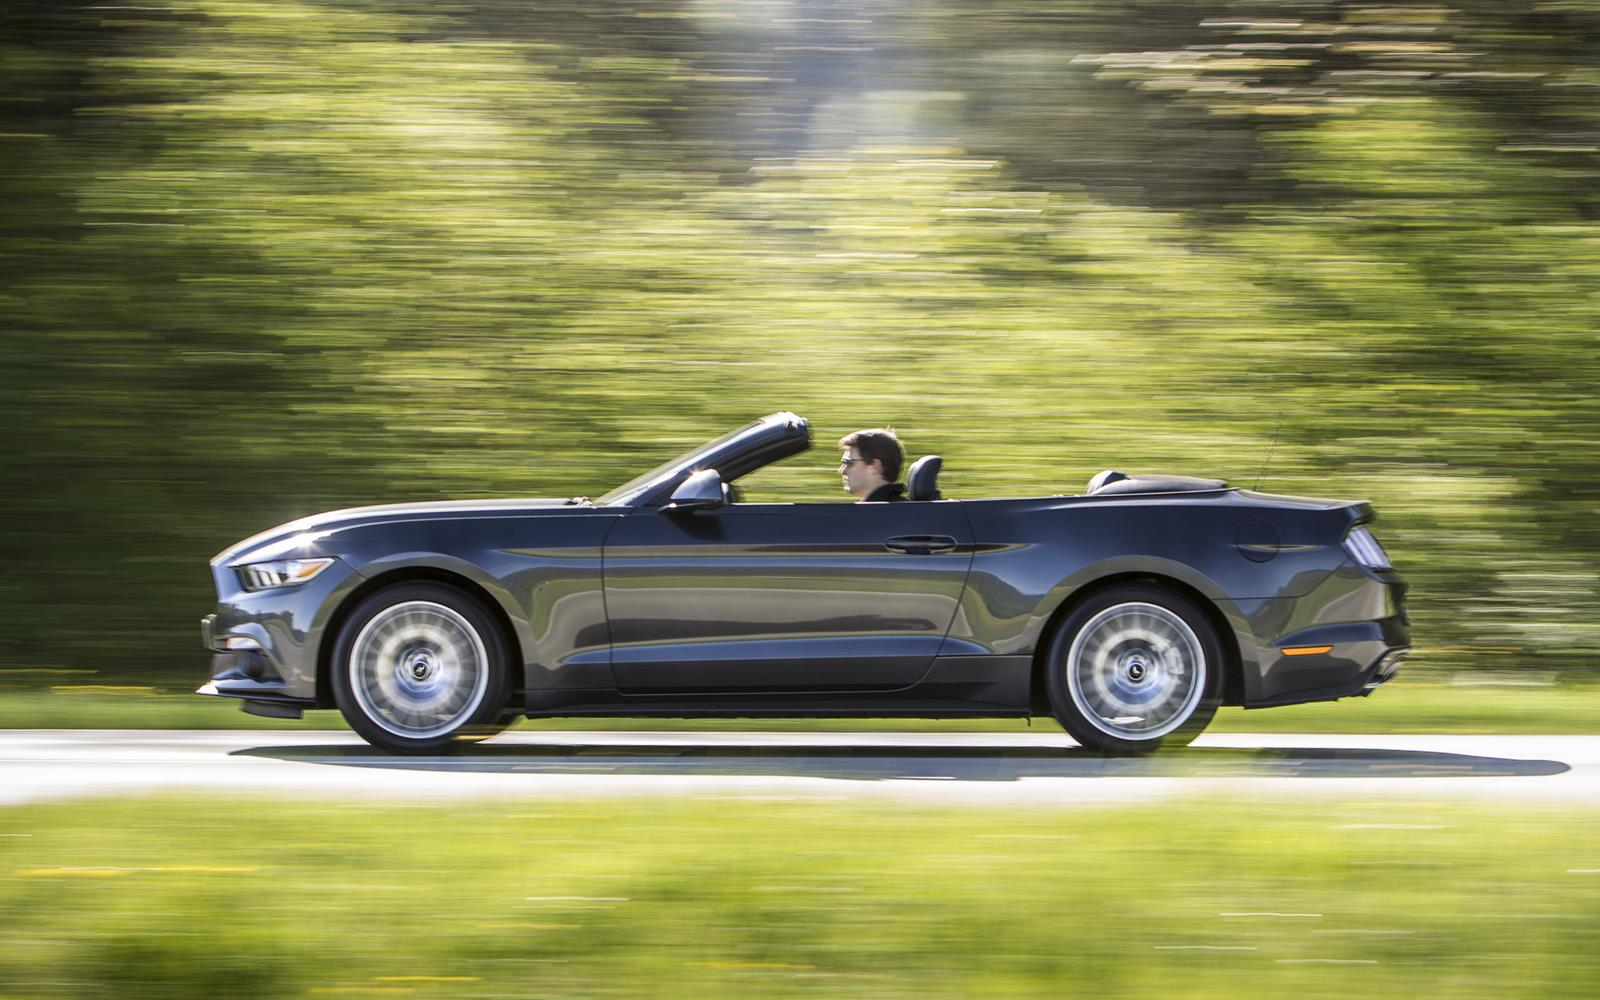 Ford Mustang 2.3 EcoBoost Convertible 2015 10